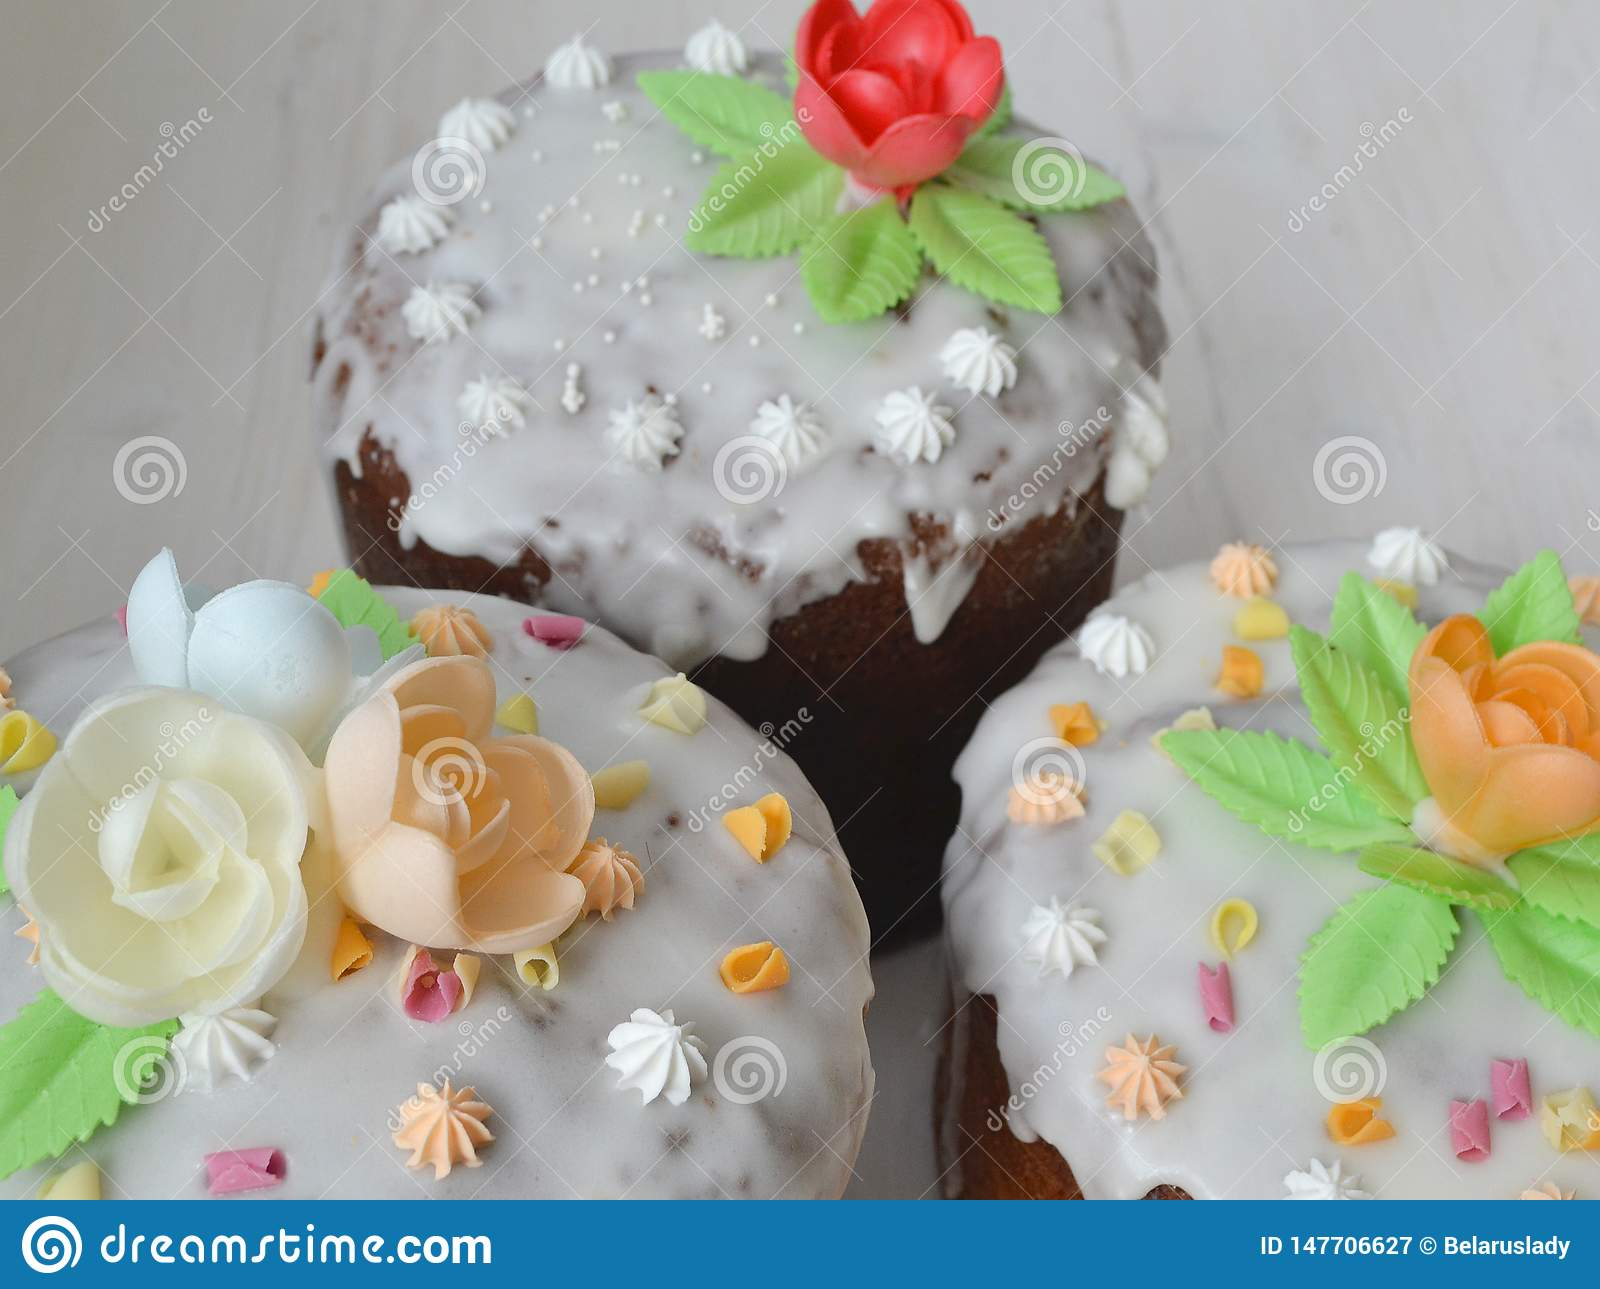 Mix of Easter cakes on a white table